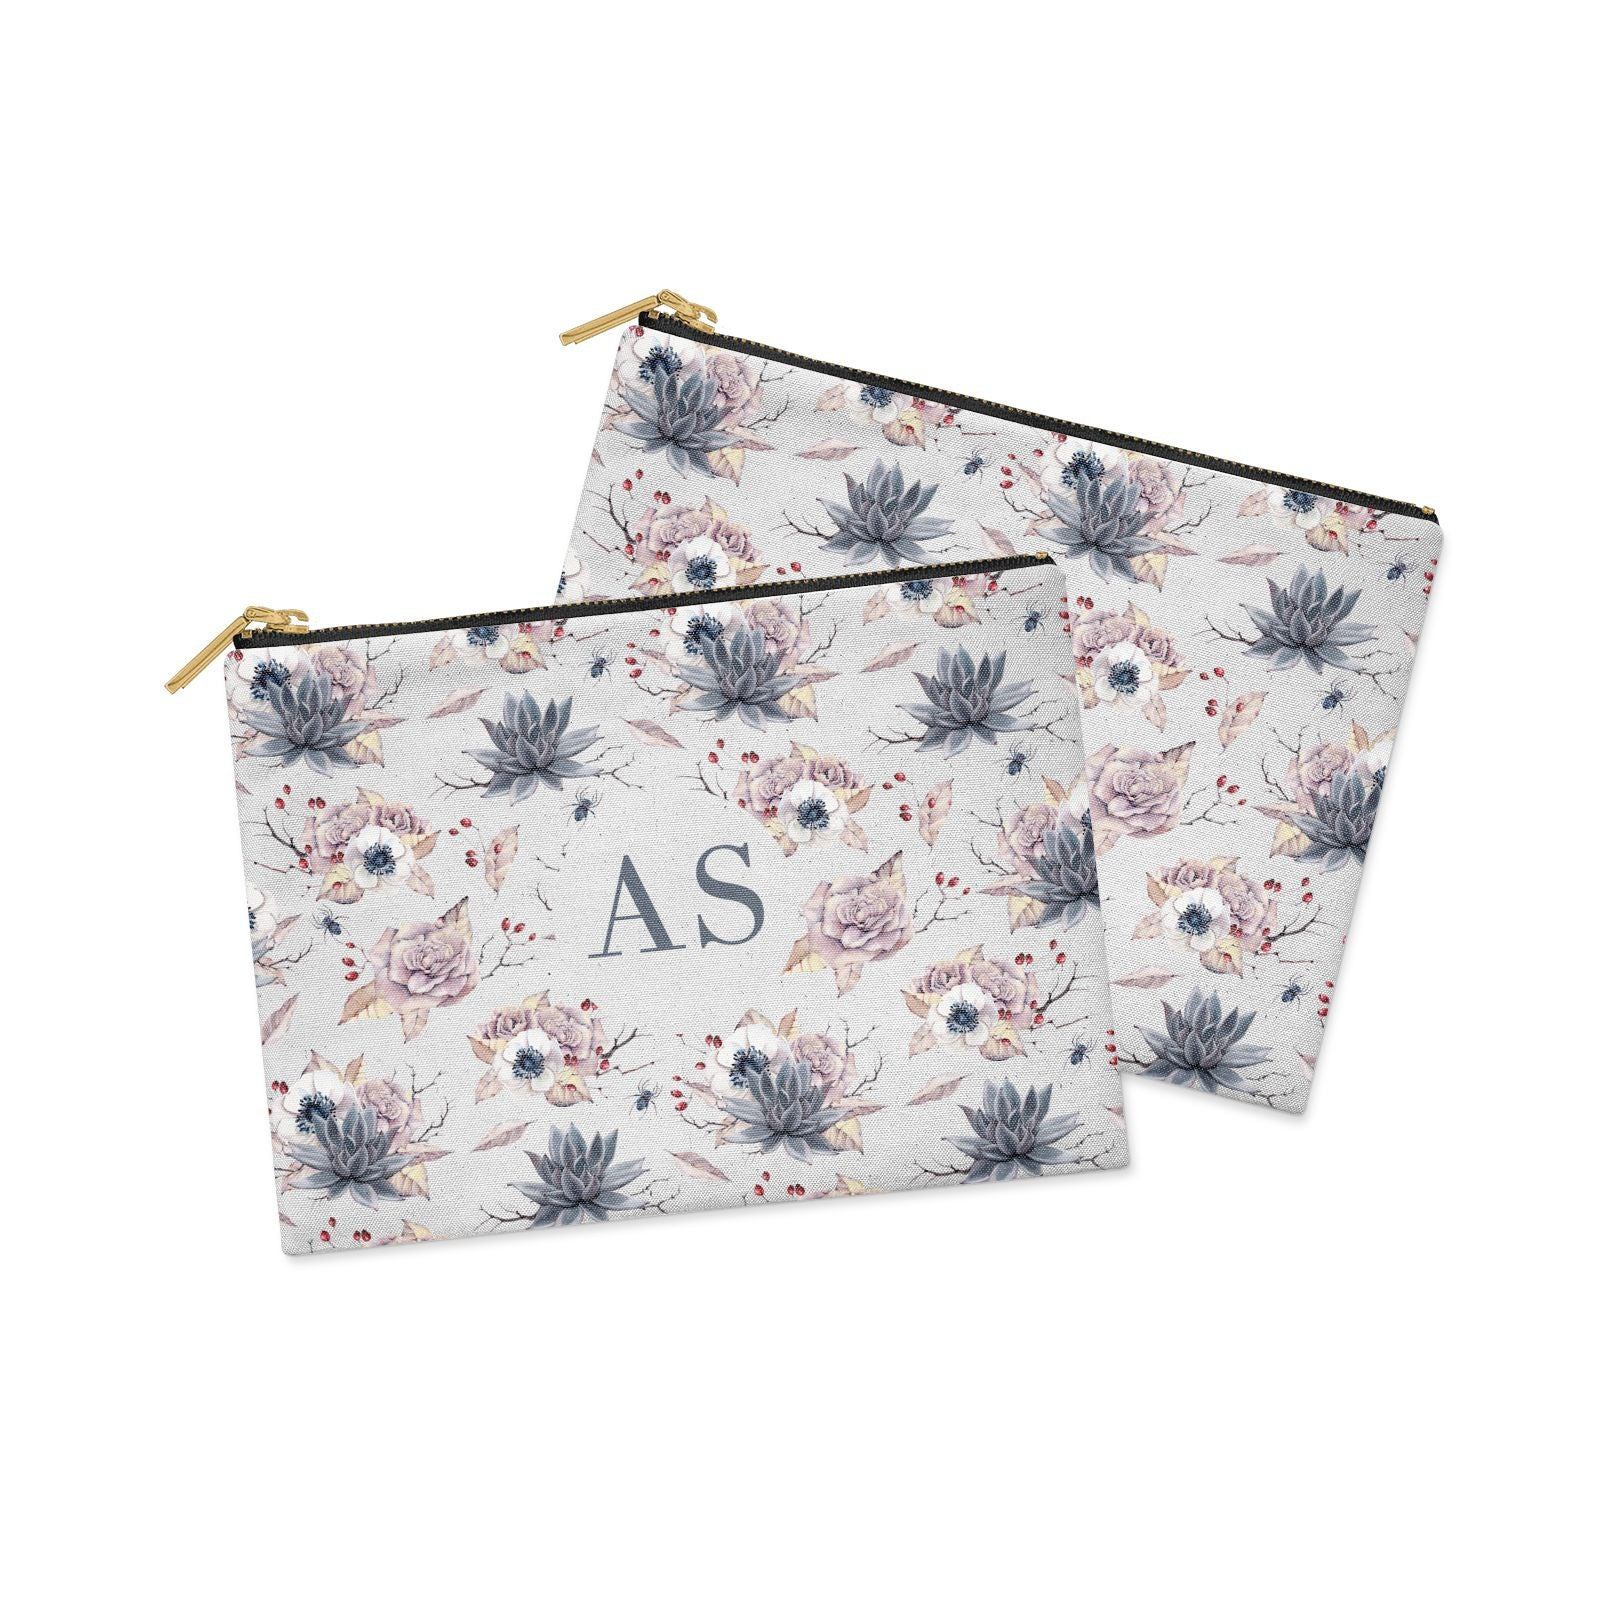 Personalised Halloween Floral Clutch Bag Zipper Pouch Alternative View